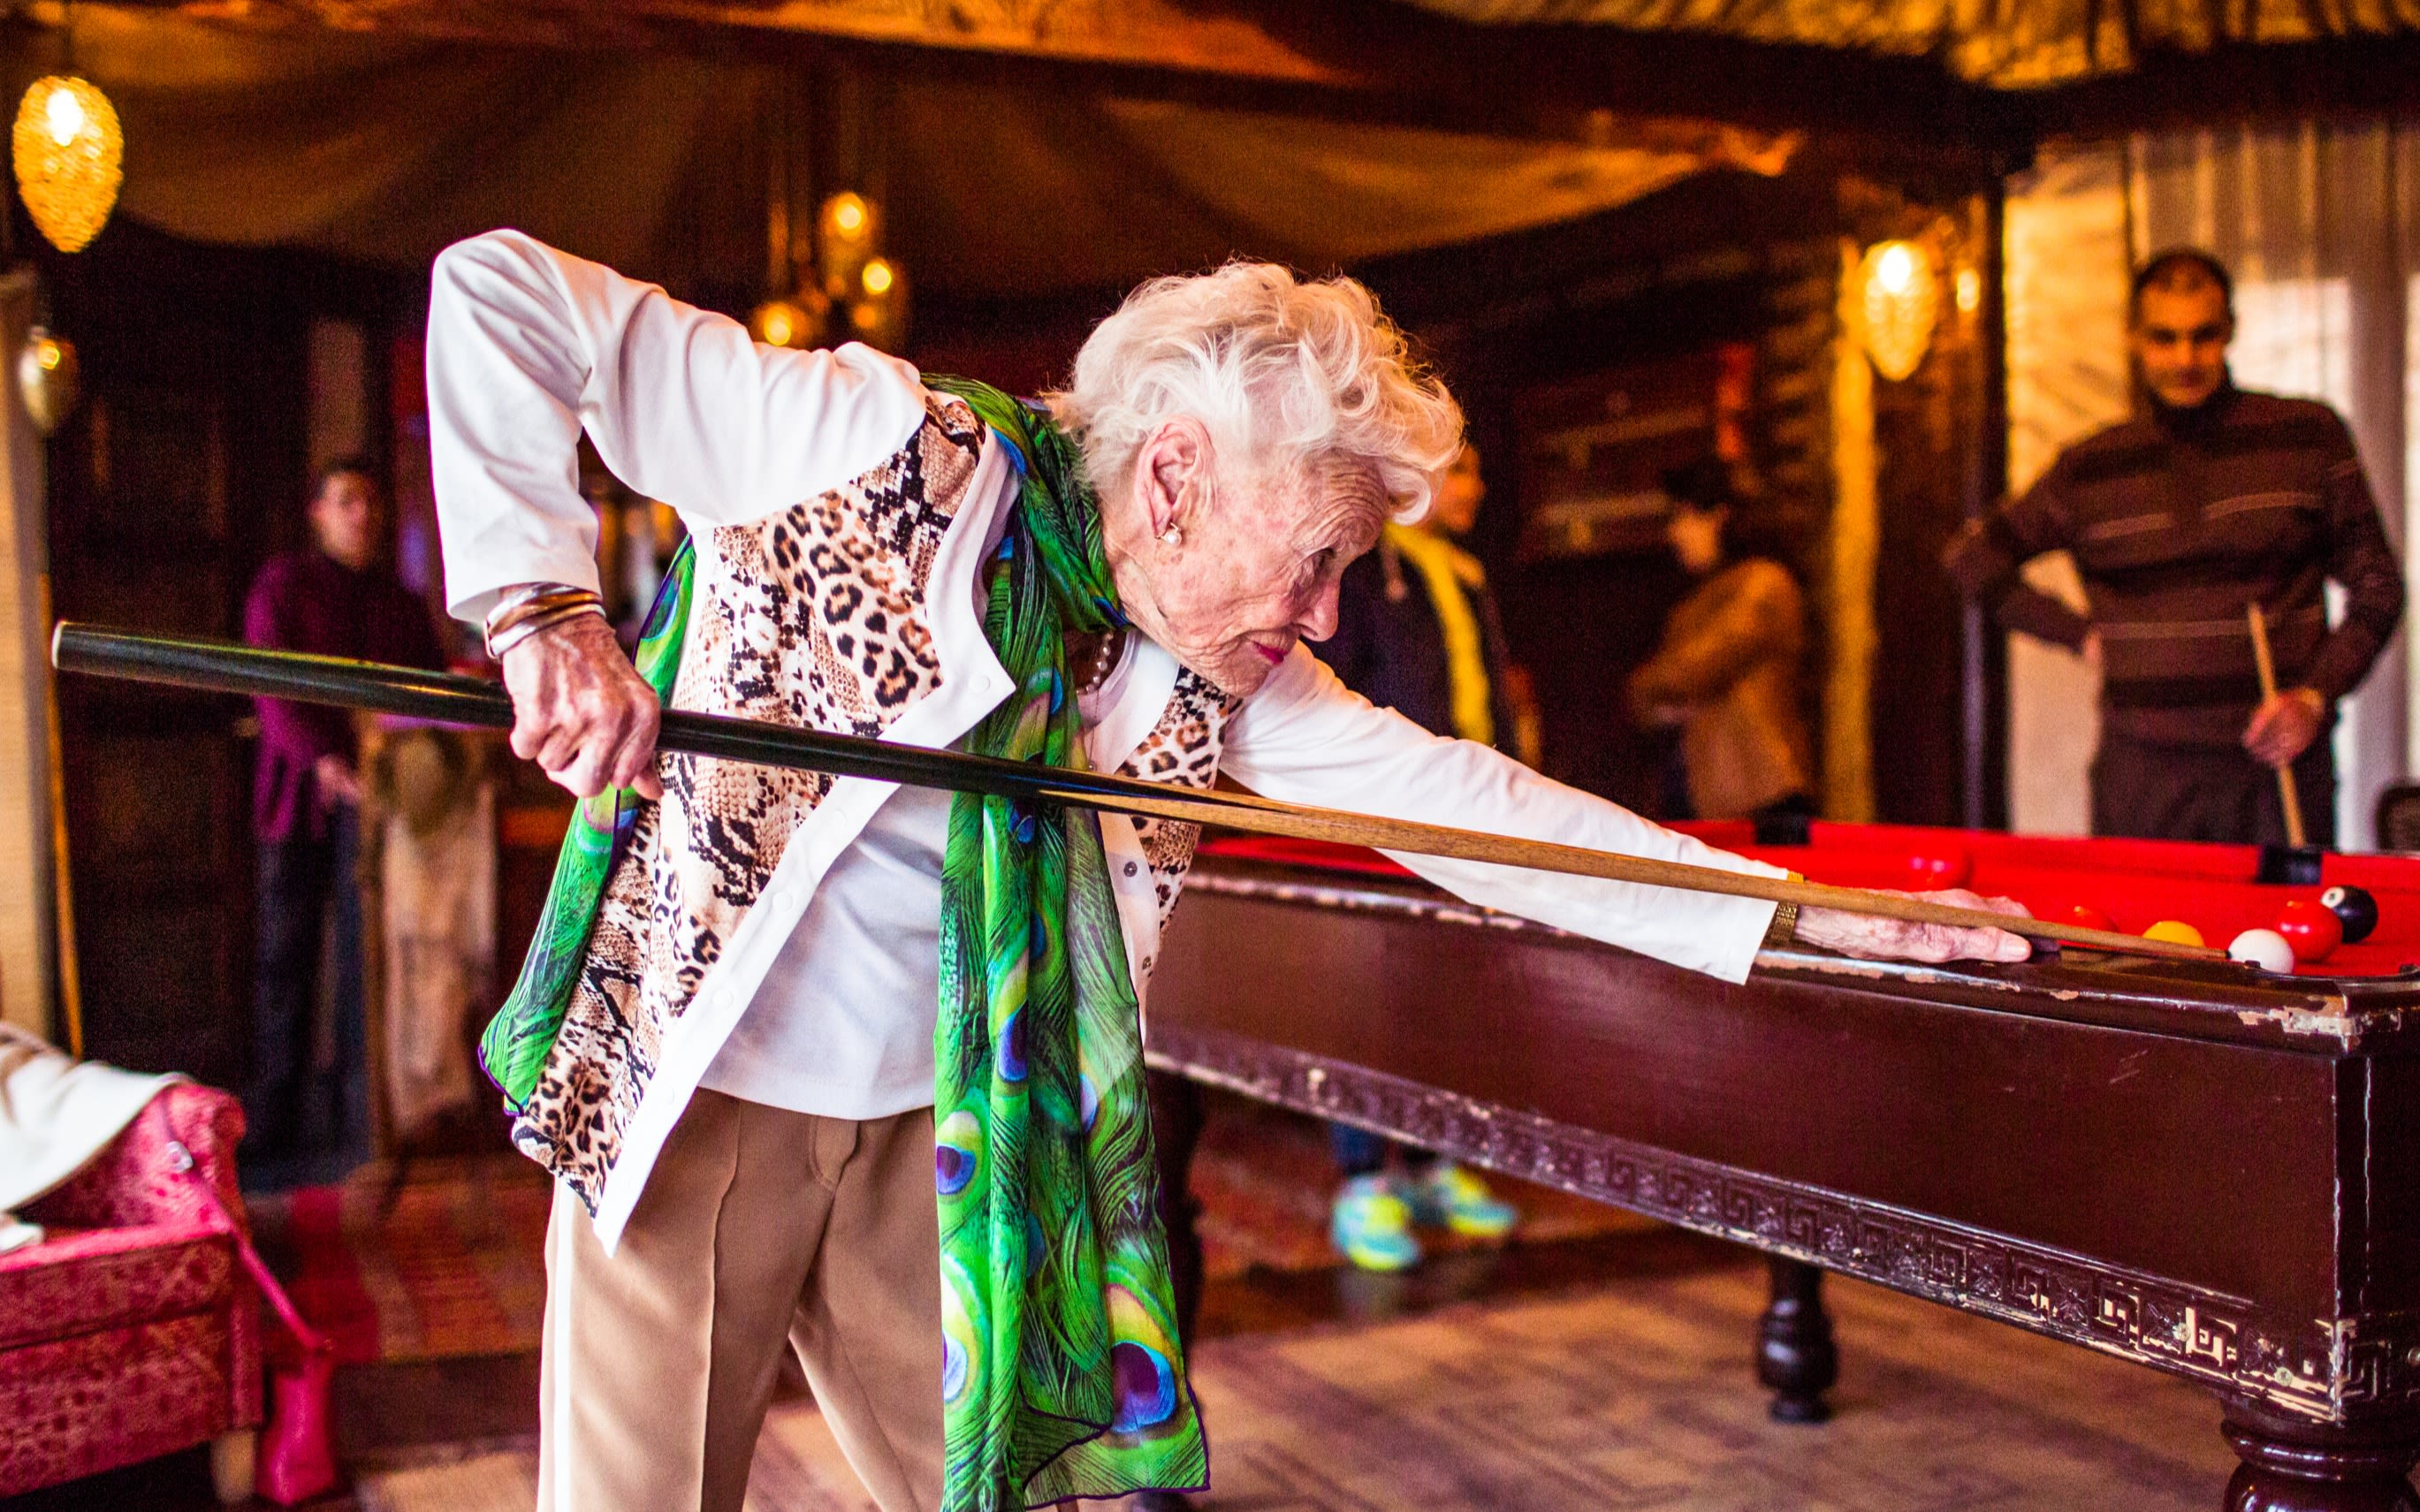 Eve Branson playing pool